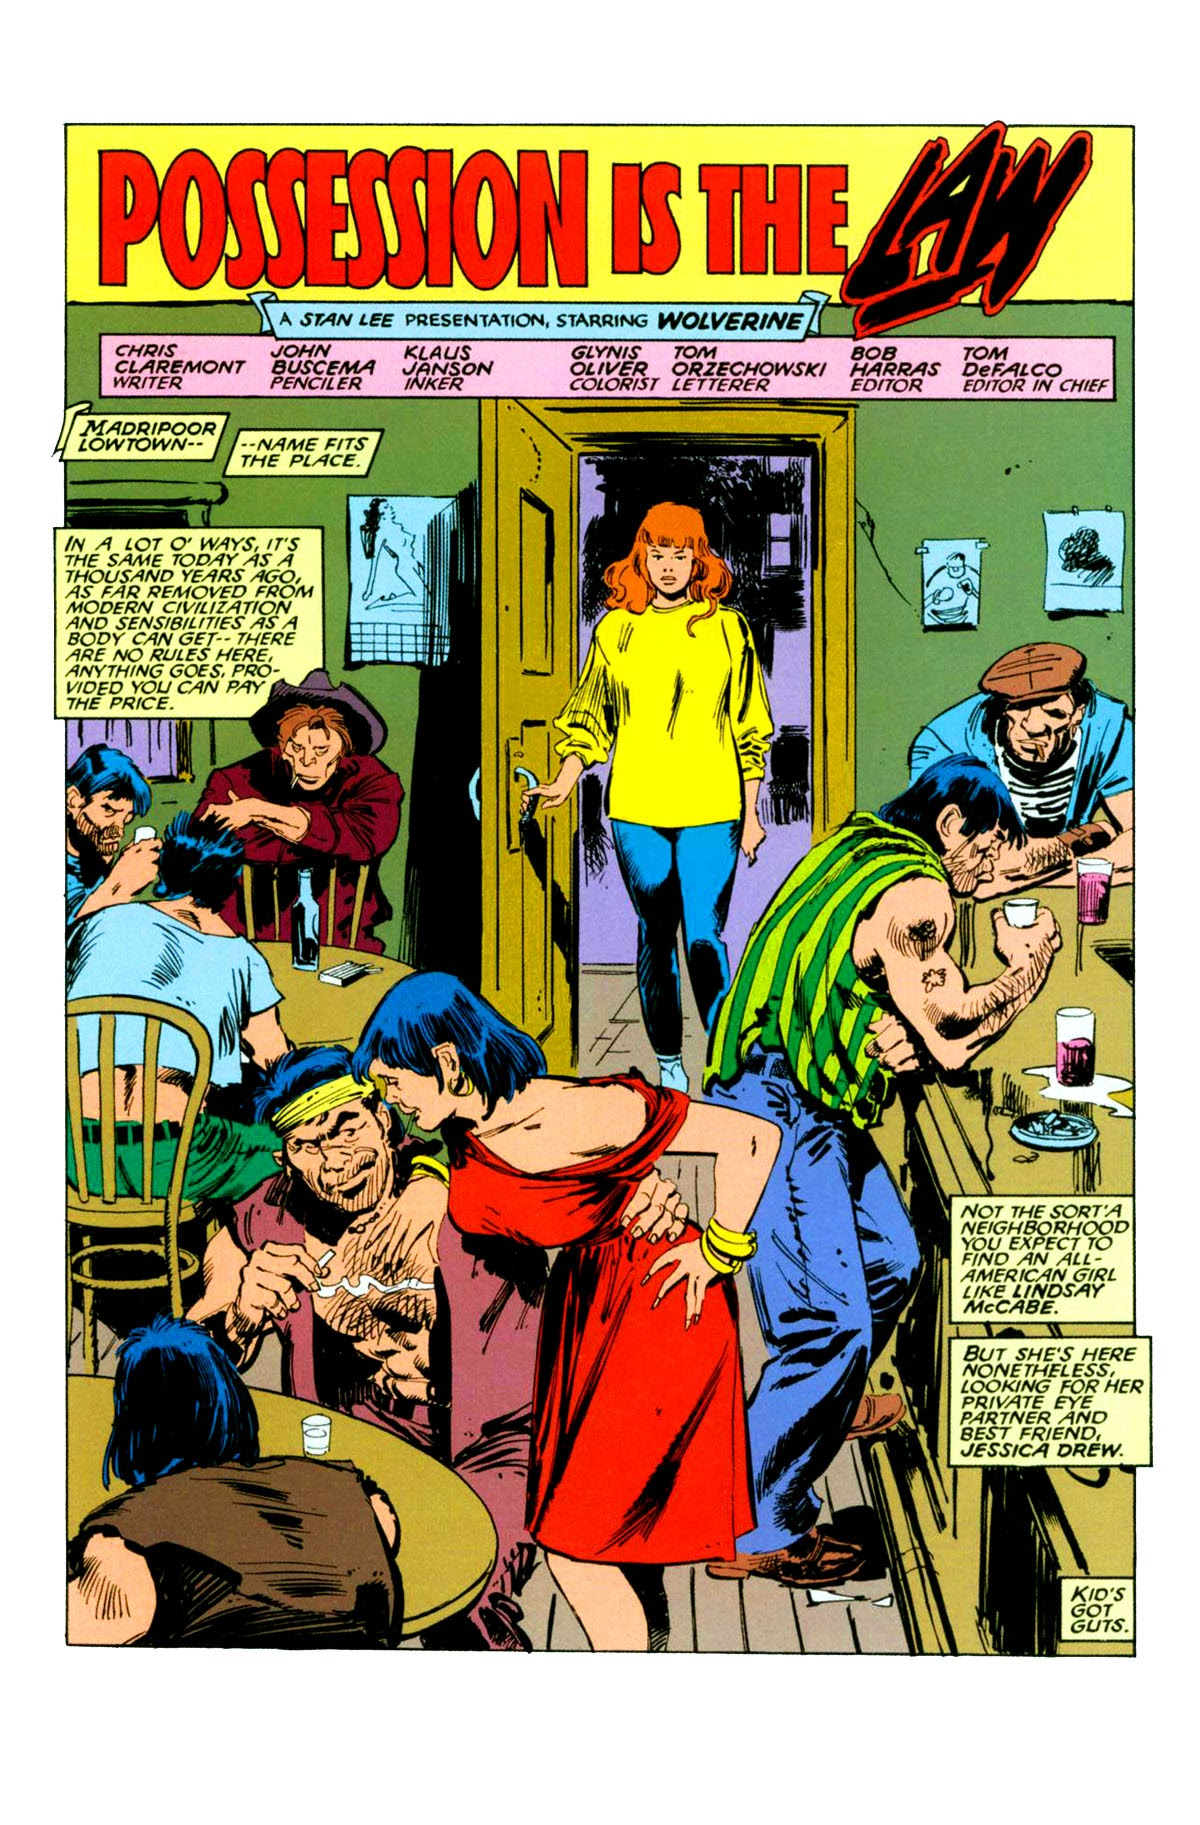 44dc967d0fd Wolverine Classic #TPB_1 - Read Wolverine Classic Issue #TPB_1 Page 28